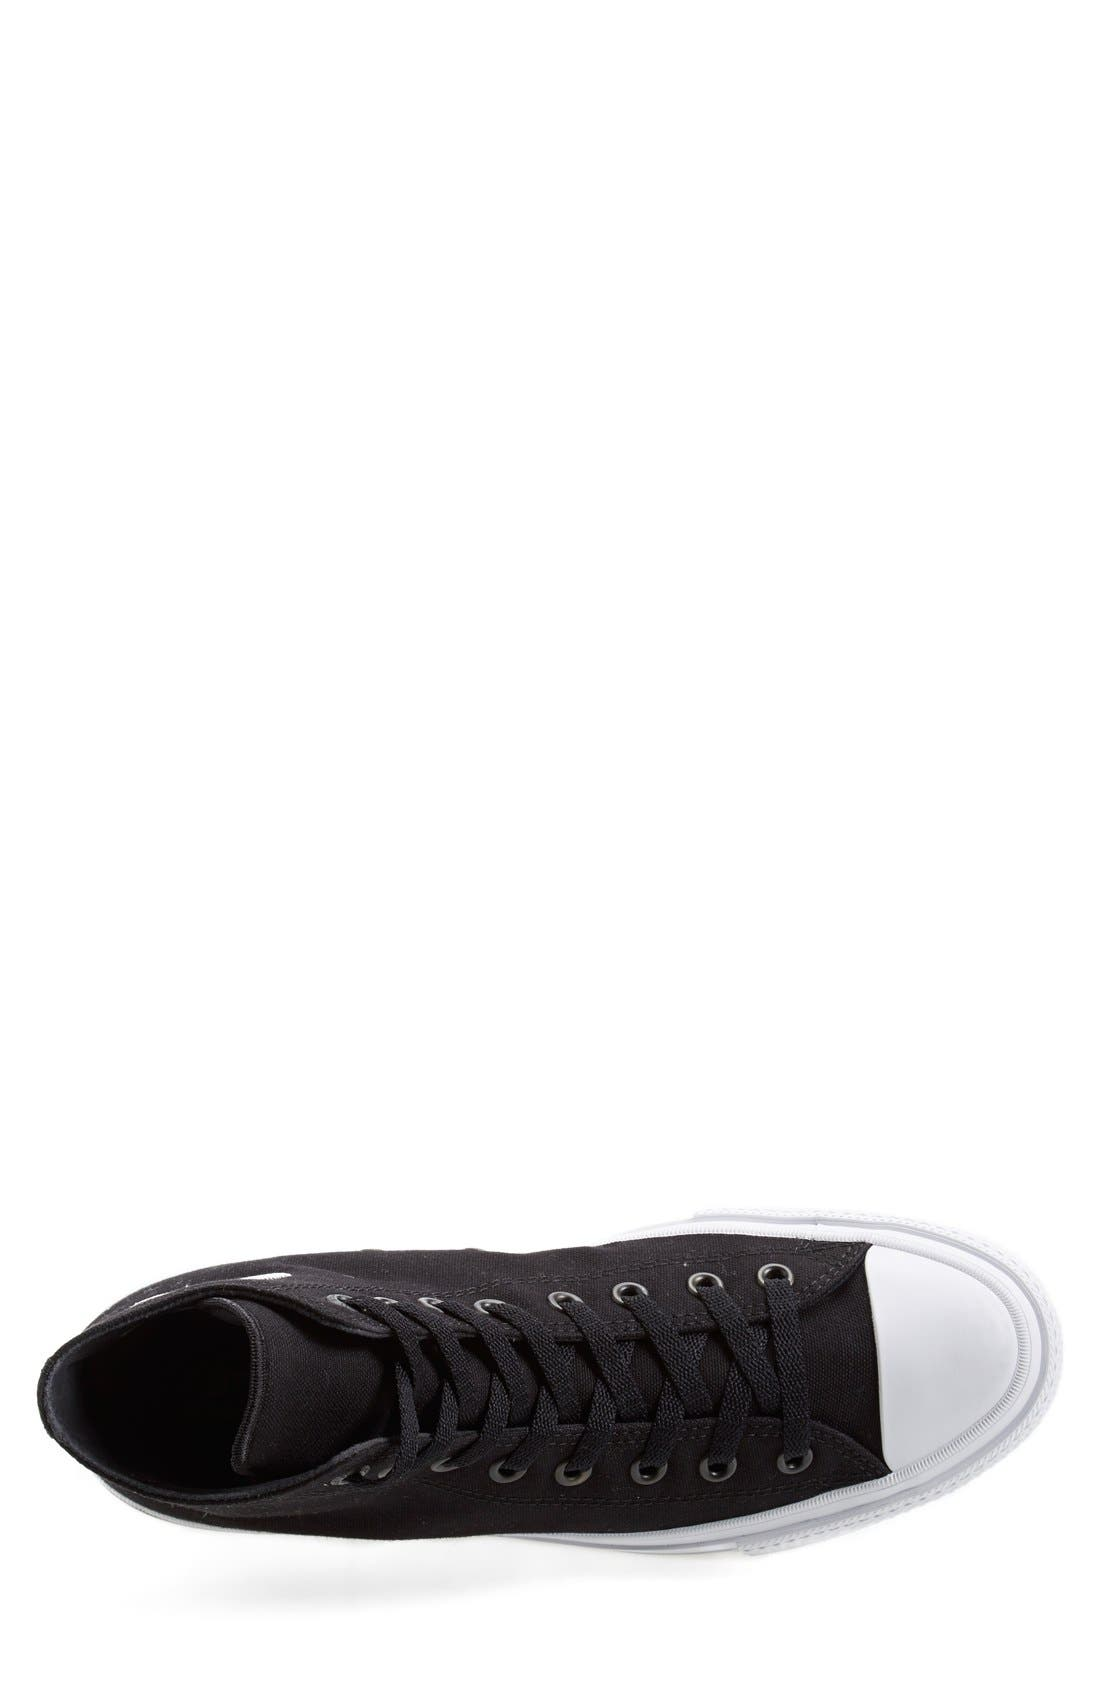 Chuck Taylor<sup>®</sup> All Star<sup>®</sup> Chuck II High Top Sneaker,                             Alternate thumbnail 3, color,                             001